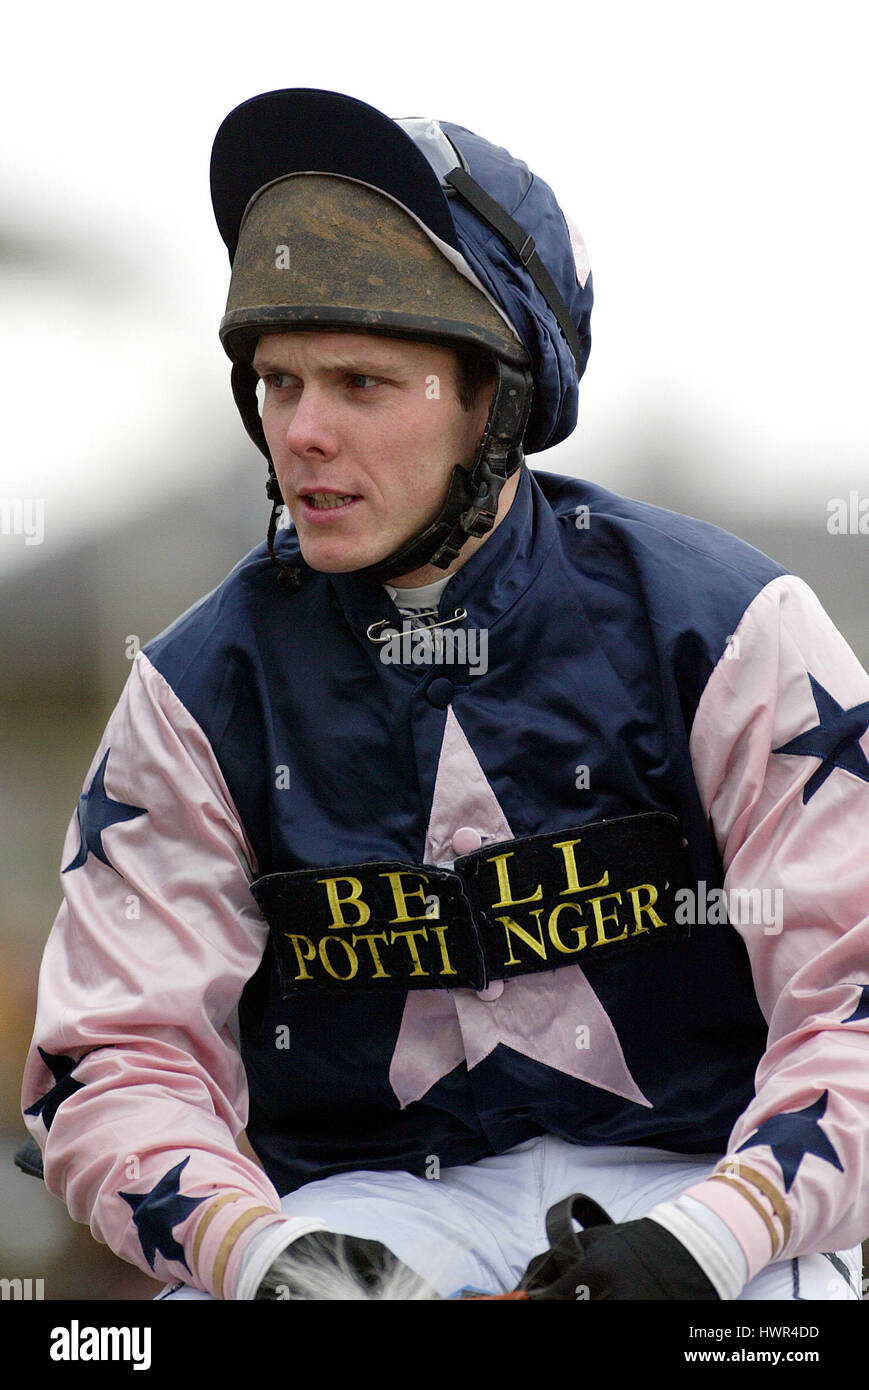 MATTHEW BATCHELOR JOCKEY DONCASTER RACECOURSE DONCASTER 12 January 2003 - Stock Image